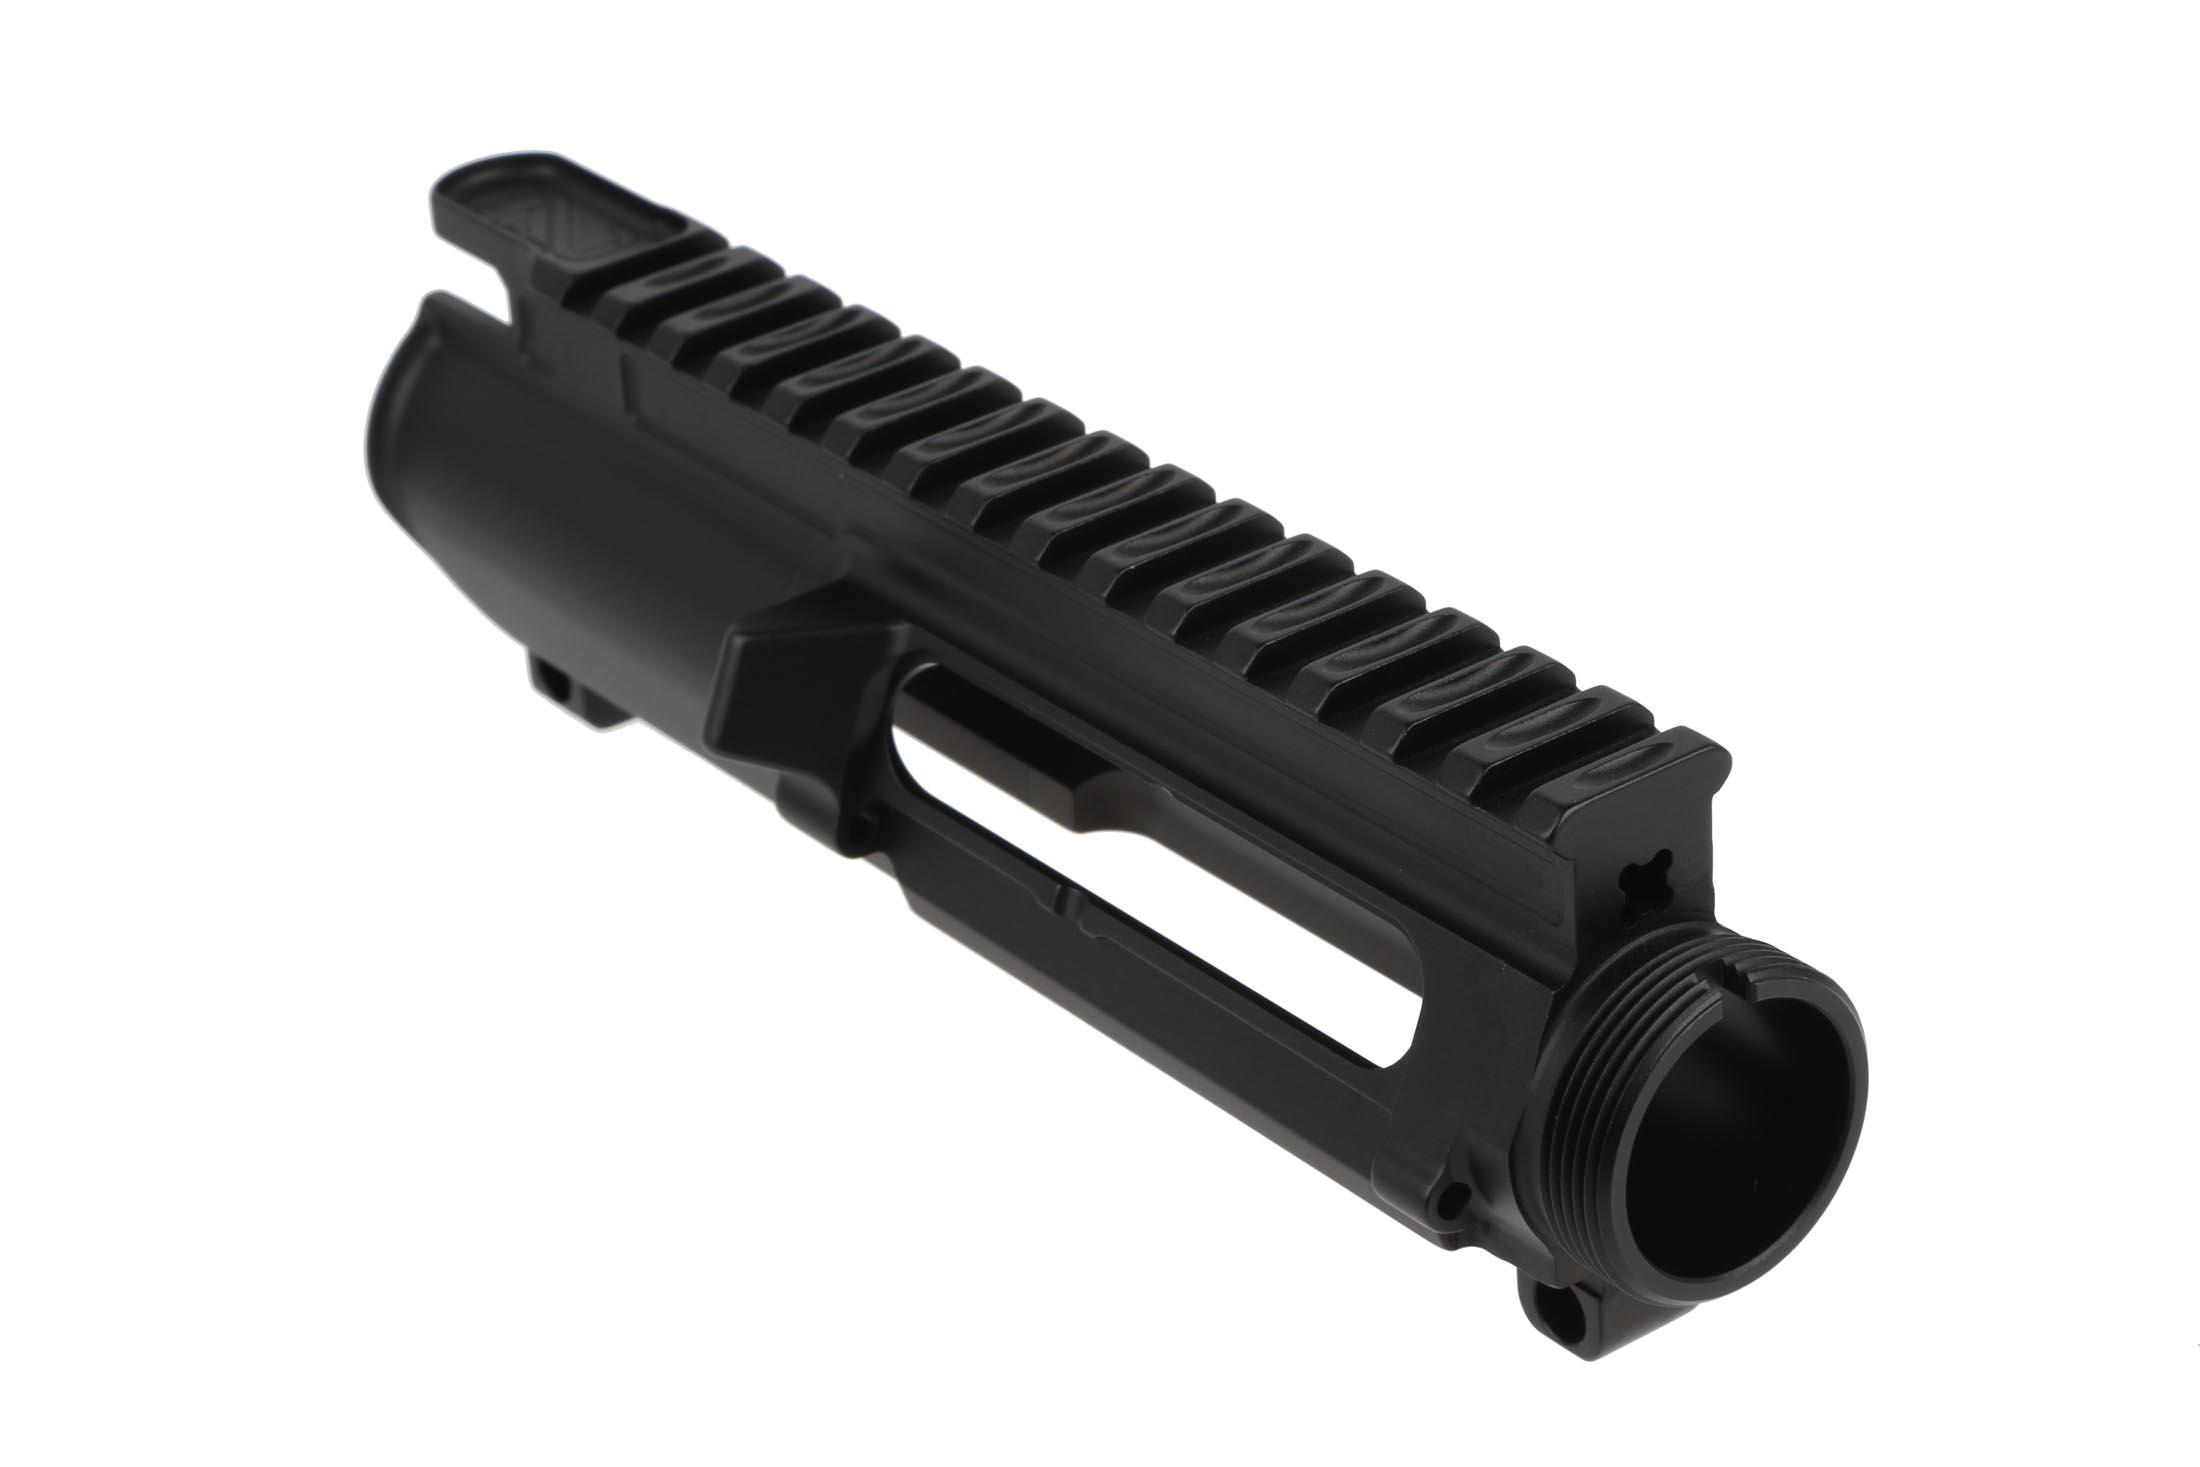 The 2A Armament Balios billet AR15 upper receiver does not include a dust cover